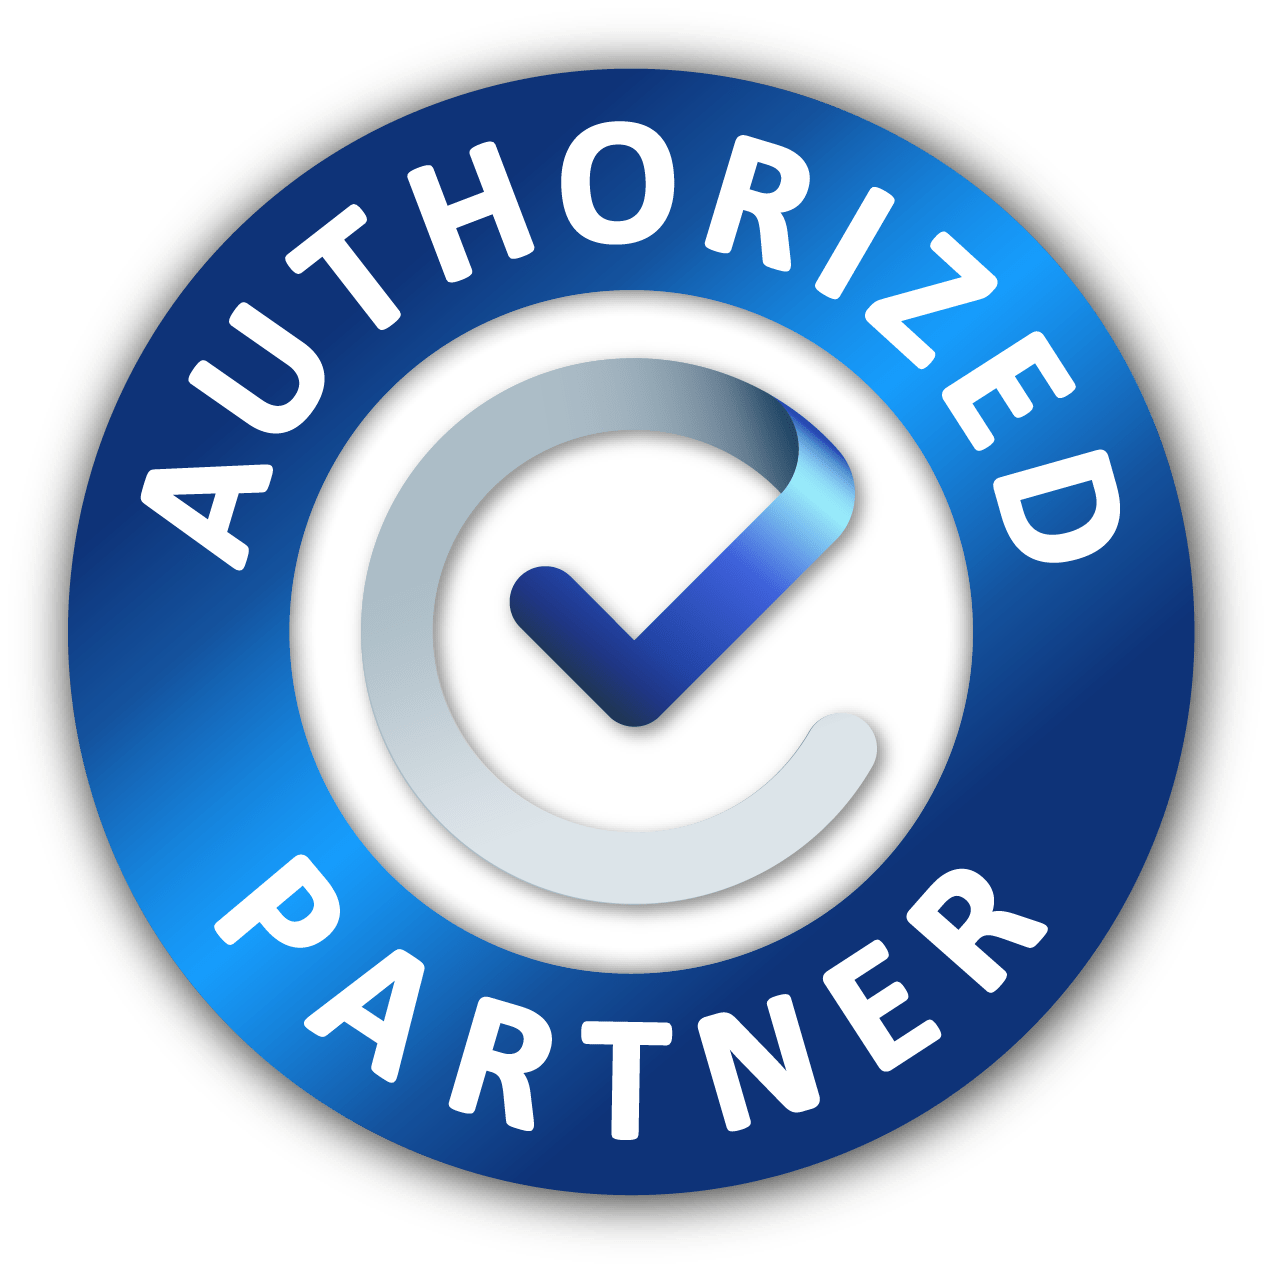 Echtzeit-Siegel Authorized Partner von authorized.by®